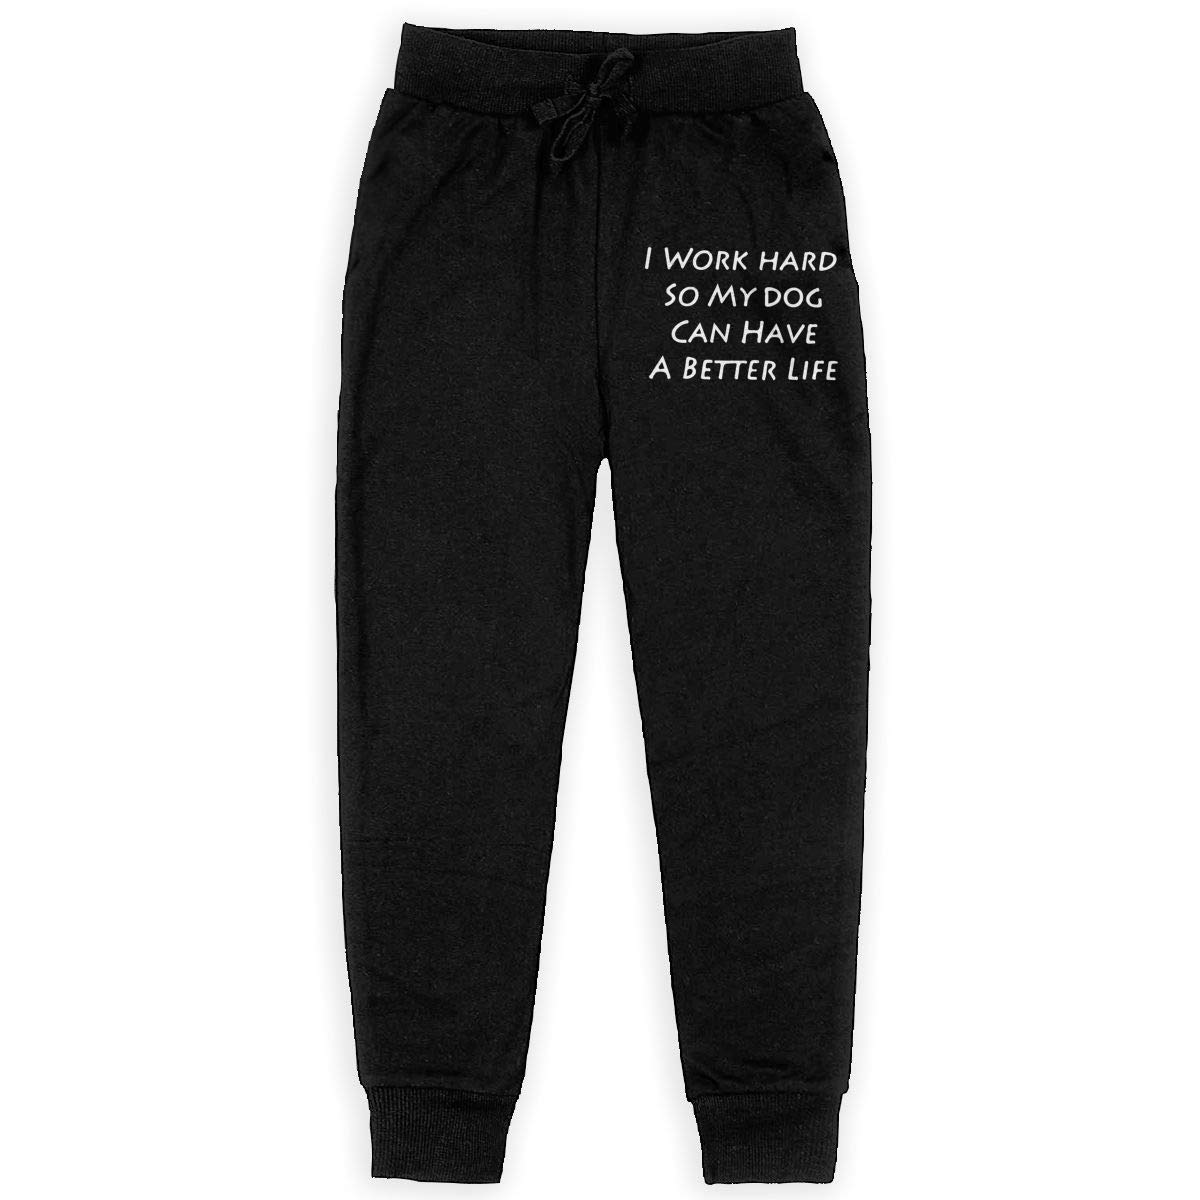 Boys Warm Fleece Active Pants for Teenager Girls I Work Hard So My Dog Can Have A Better Life Soft//Cozy Sweatpants